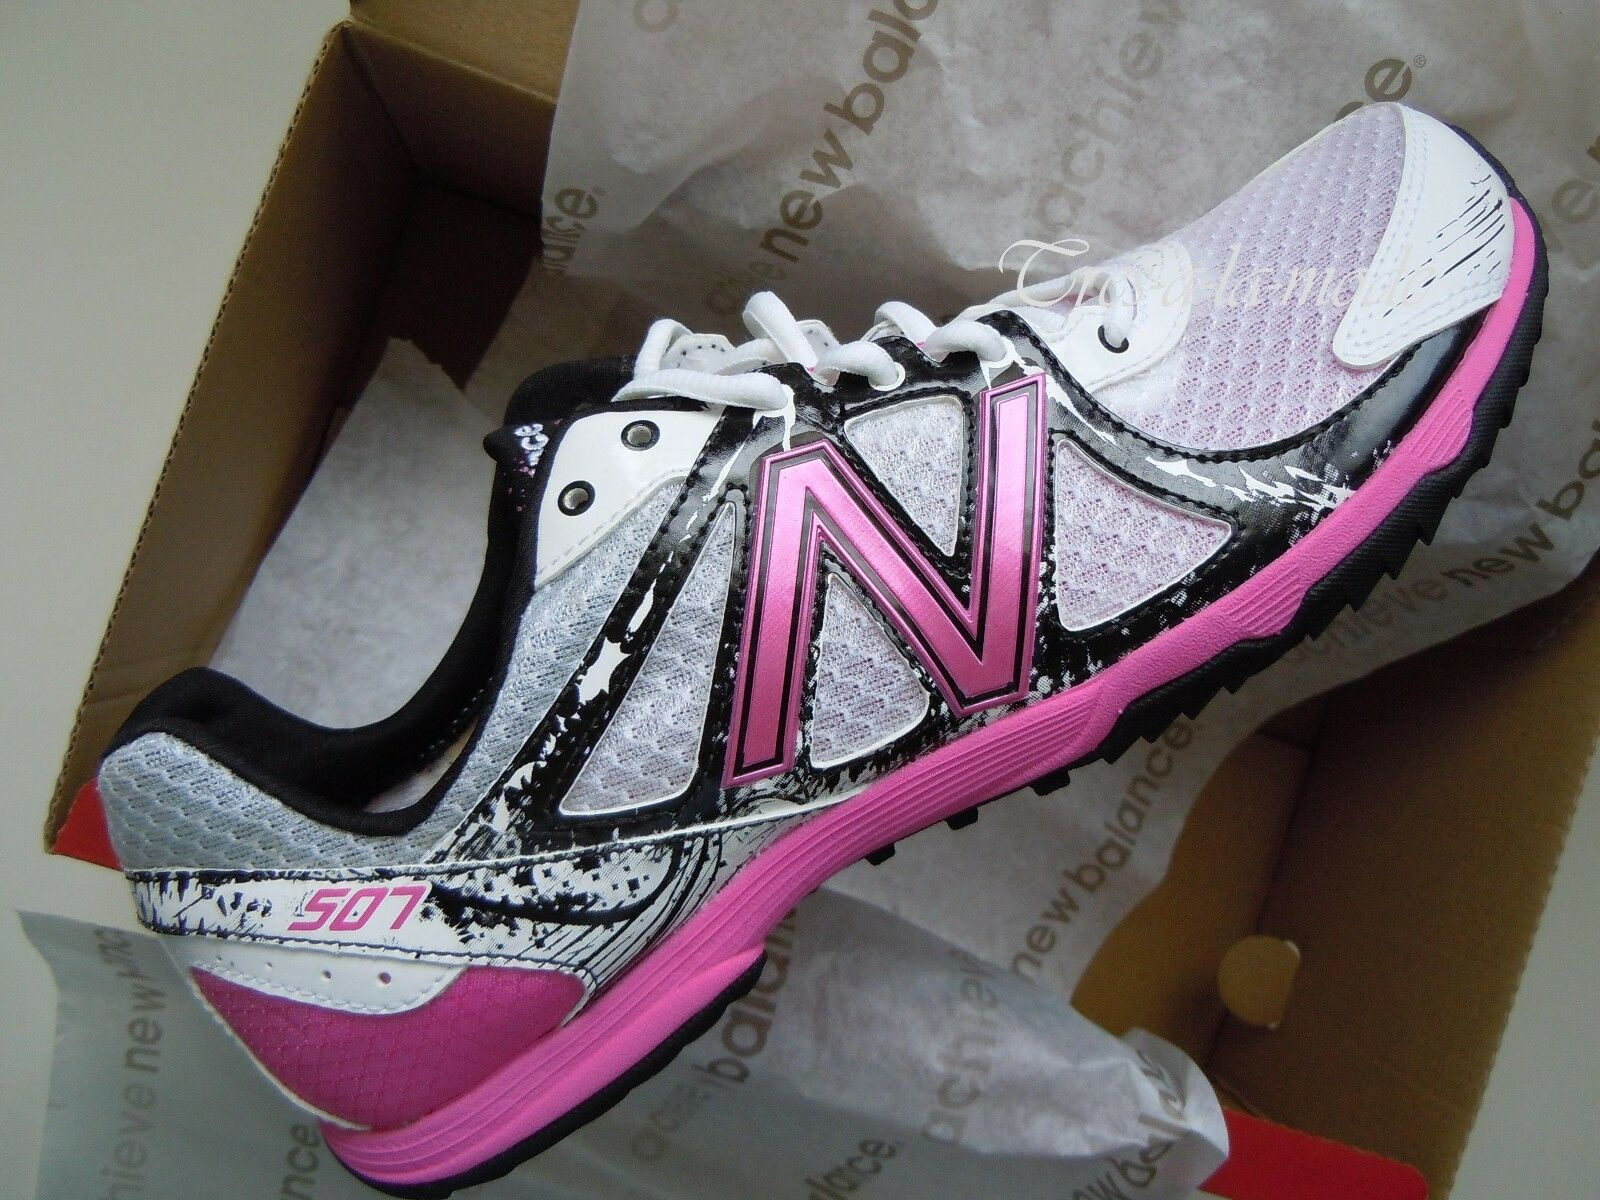 new arrival a79ef b8a15 New Balance damen 507 spikes spikes spikes  Größe 9.5  Last 1,  wrx507cp cross country eef411